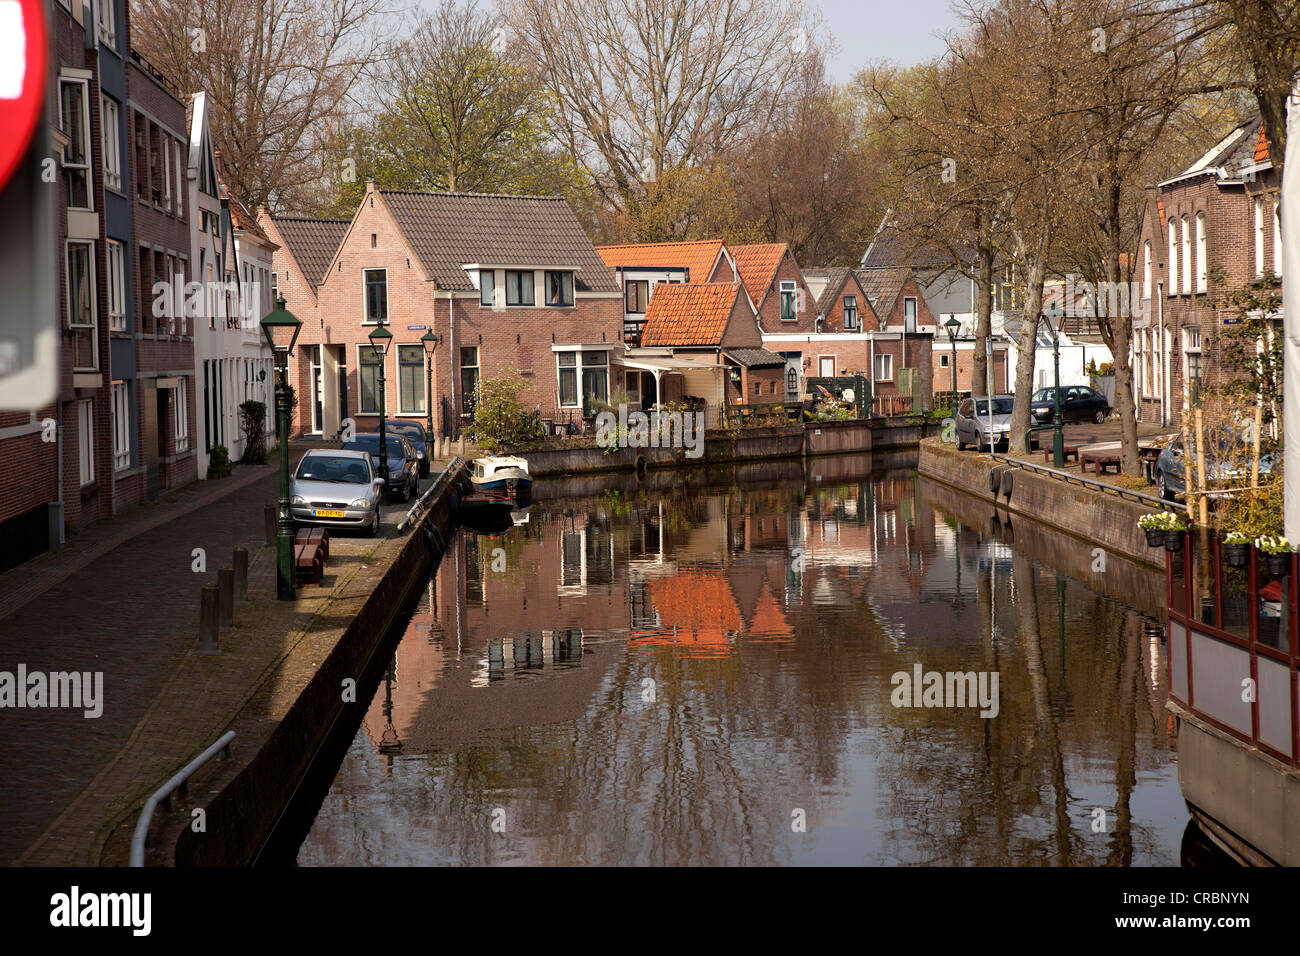 Canal and houses in Alkmaar, North Holland, Netherlands, Europe - Stock Image